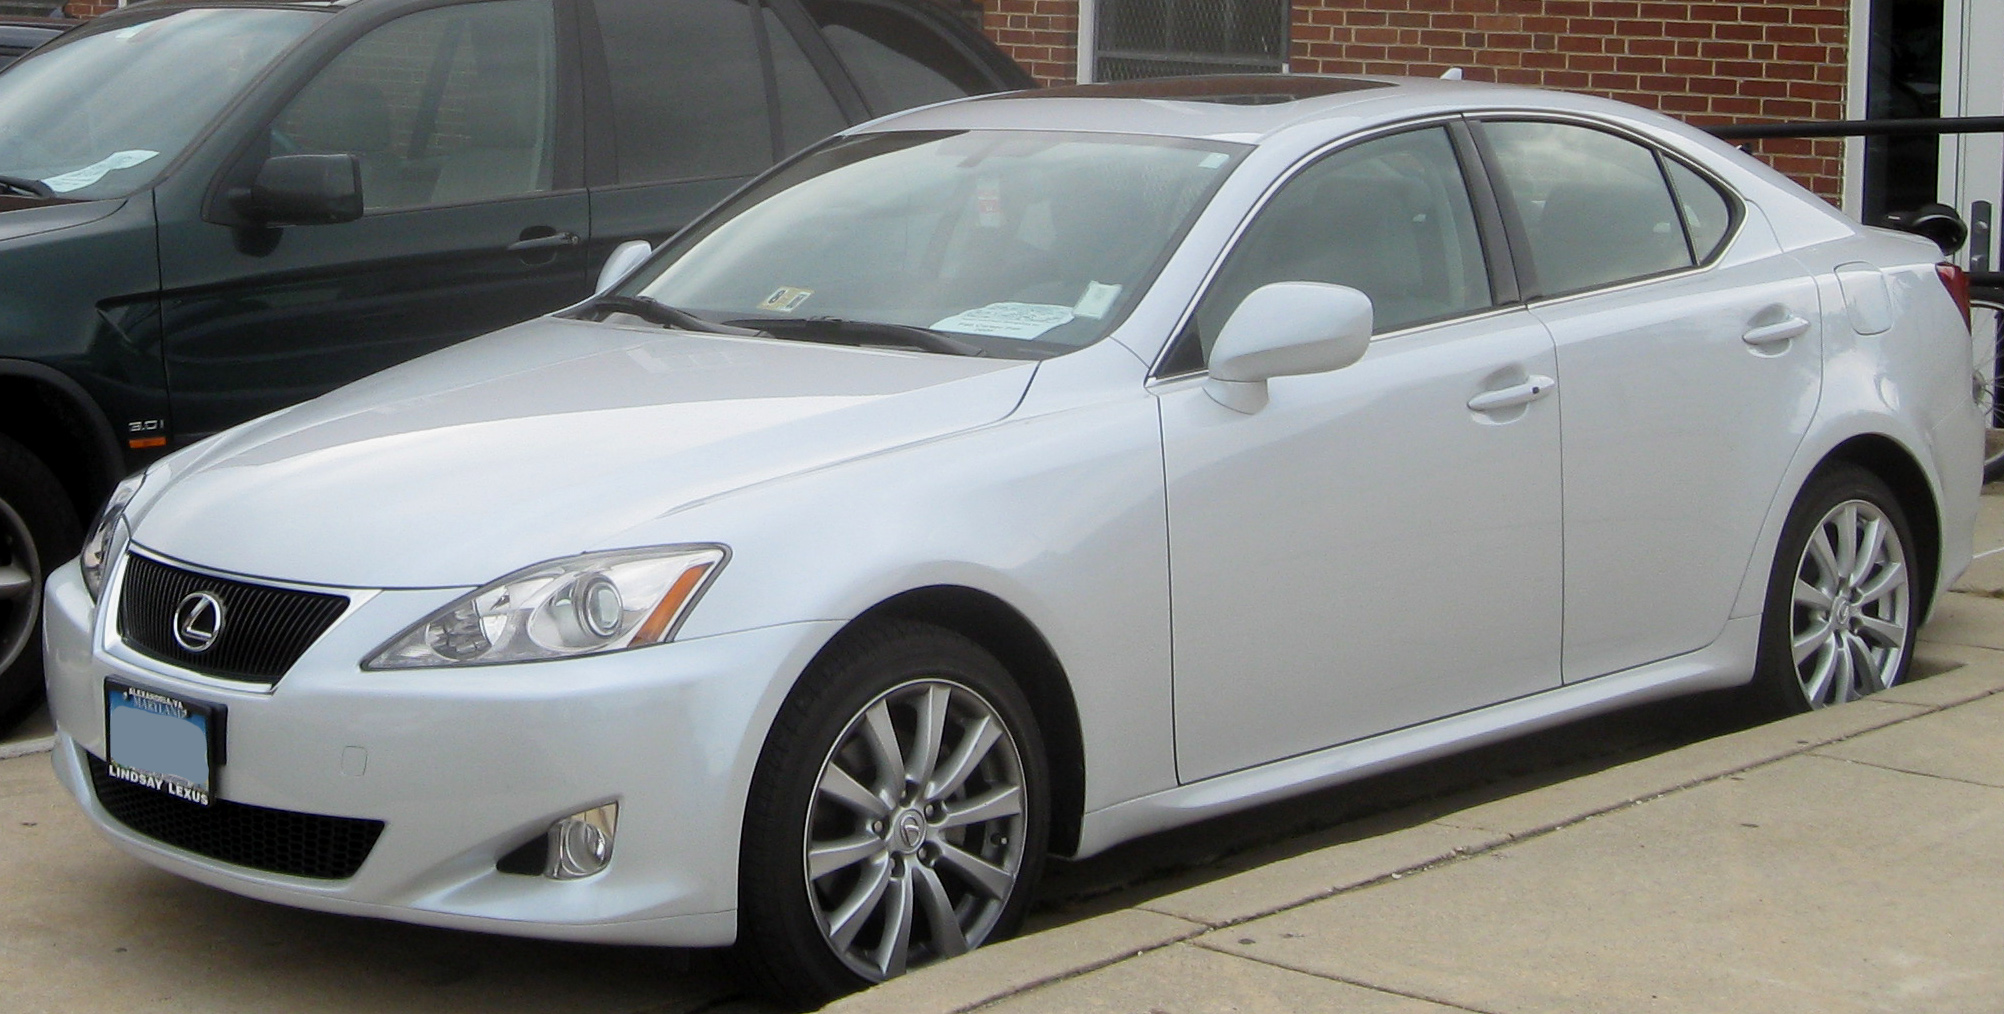 Delightful File:Lexus IS250 AWD